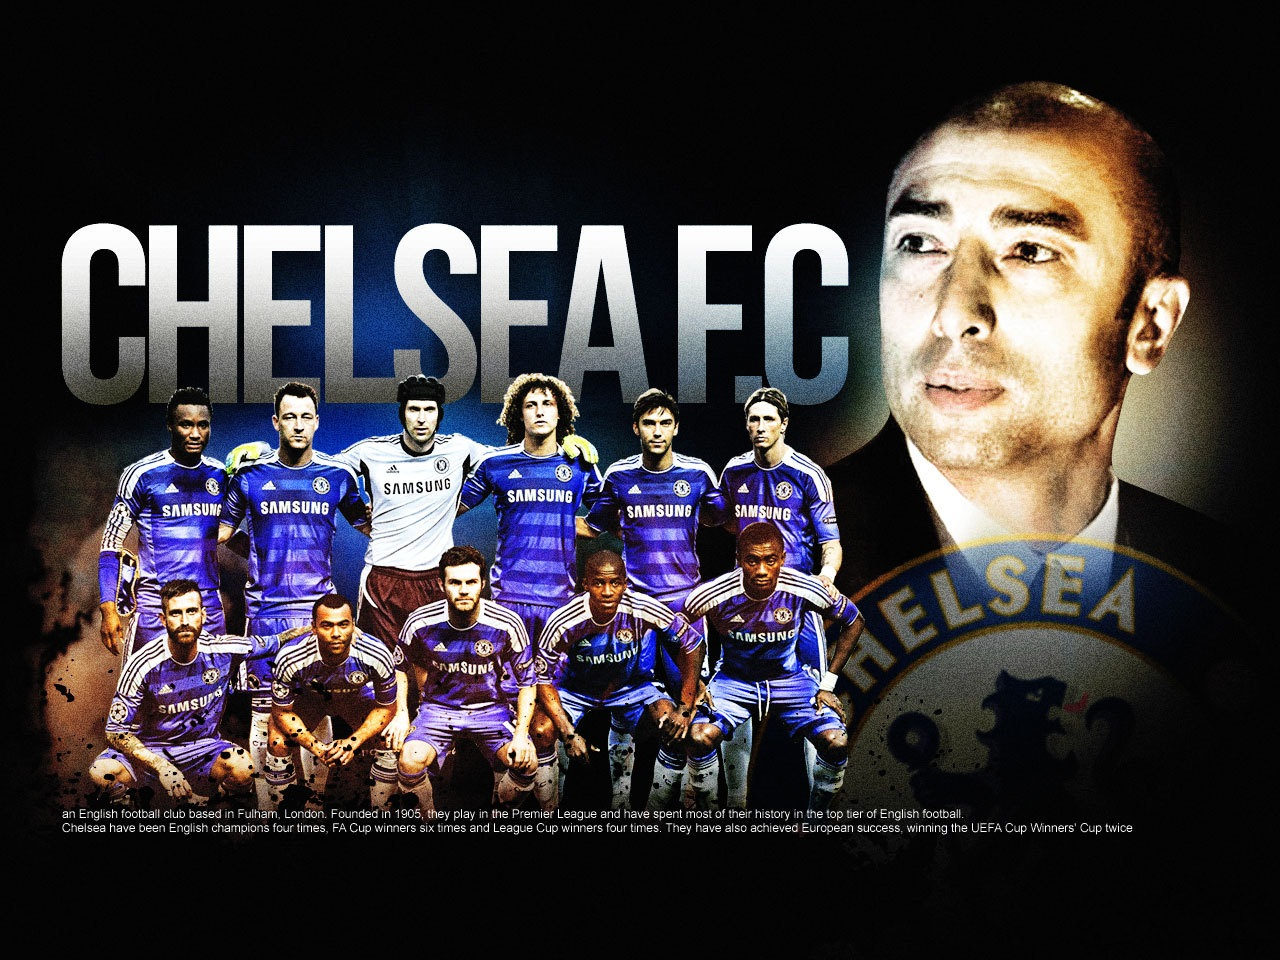 News 2013 chelsea fc soccer hd wallpapers 2012 2013 chelsea fc soccer hd wallpapers 2012 2013 voltagebd Gallery